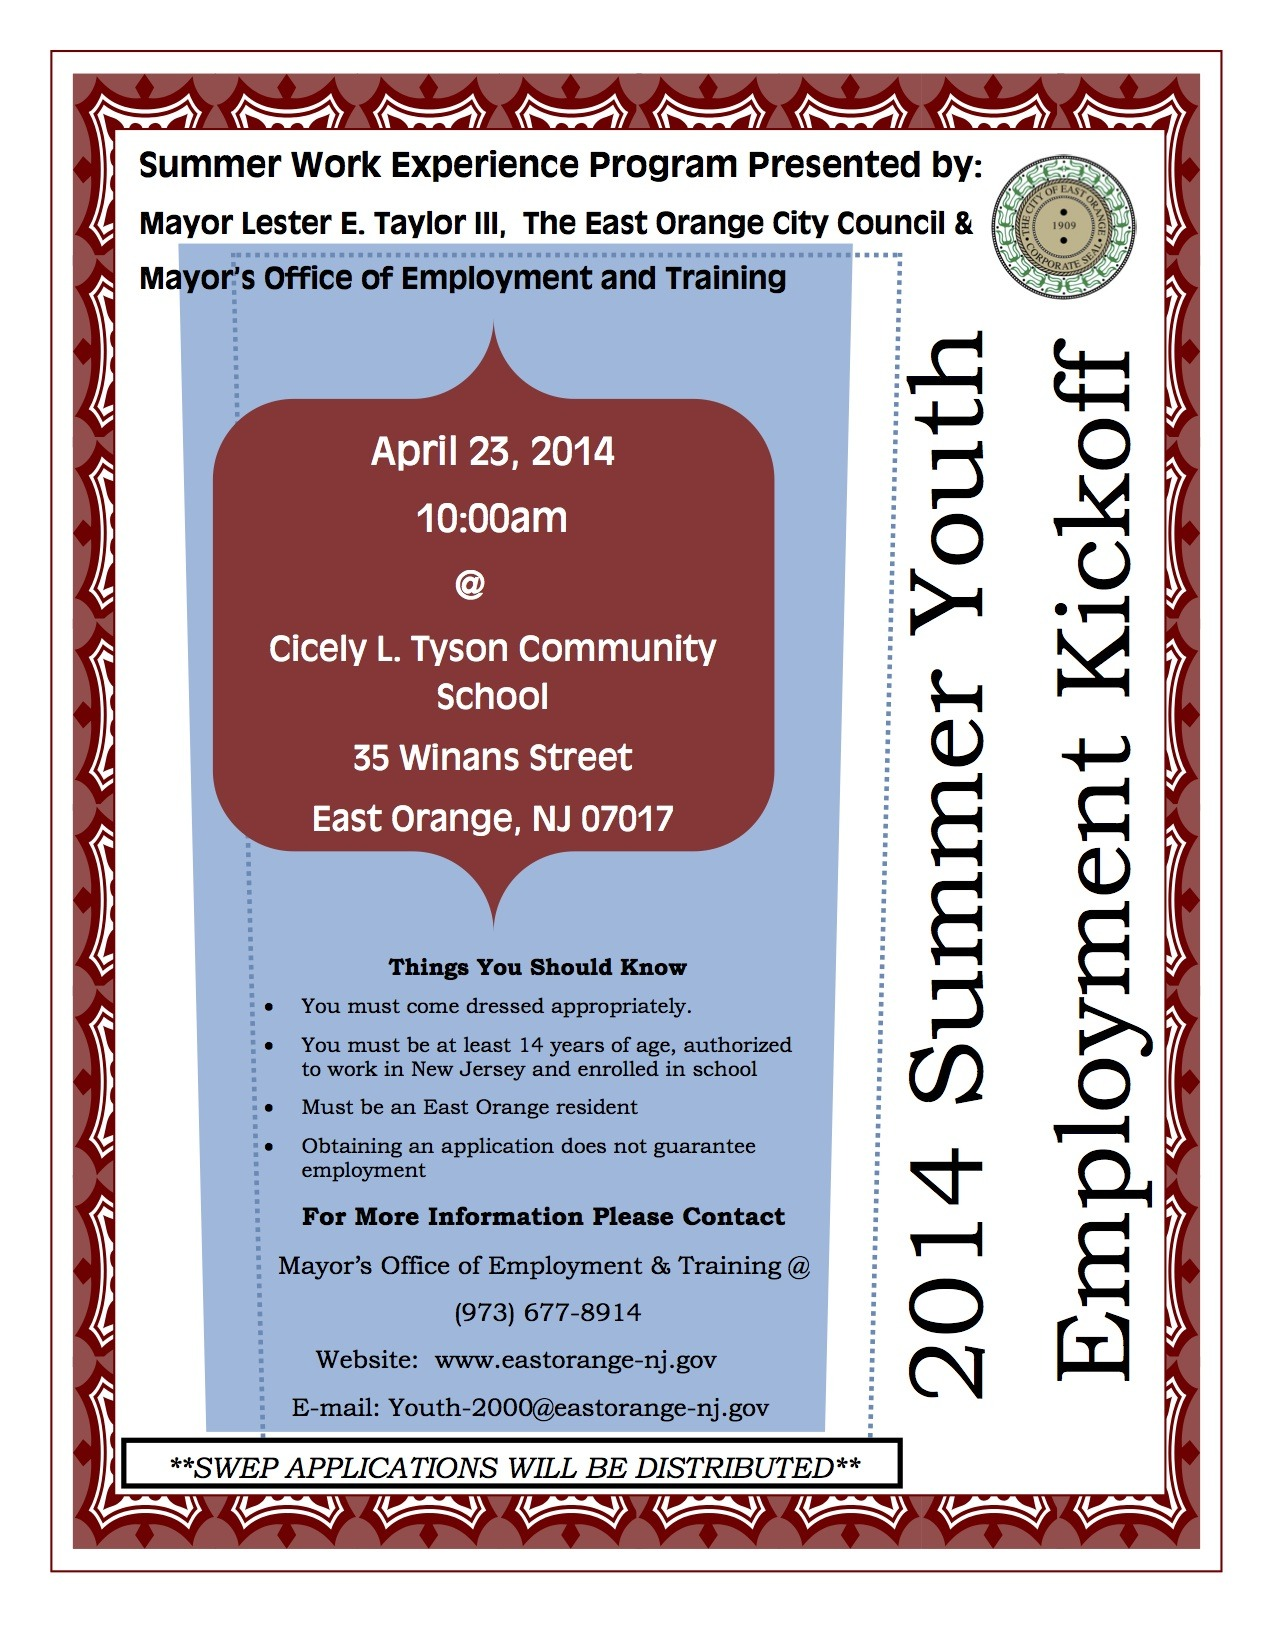 f4d3d5e6d9bea0ca4c2f_2014_Summer_Youth_Employment_Kickoff_Flyer_copy.jpg